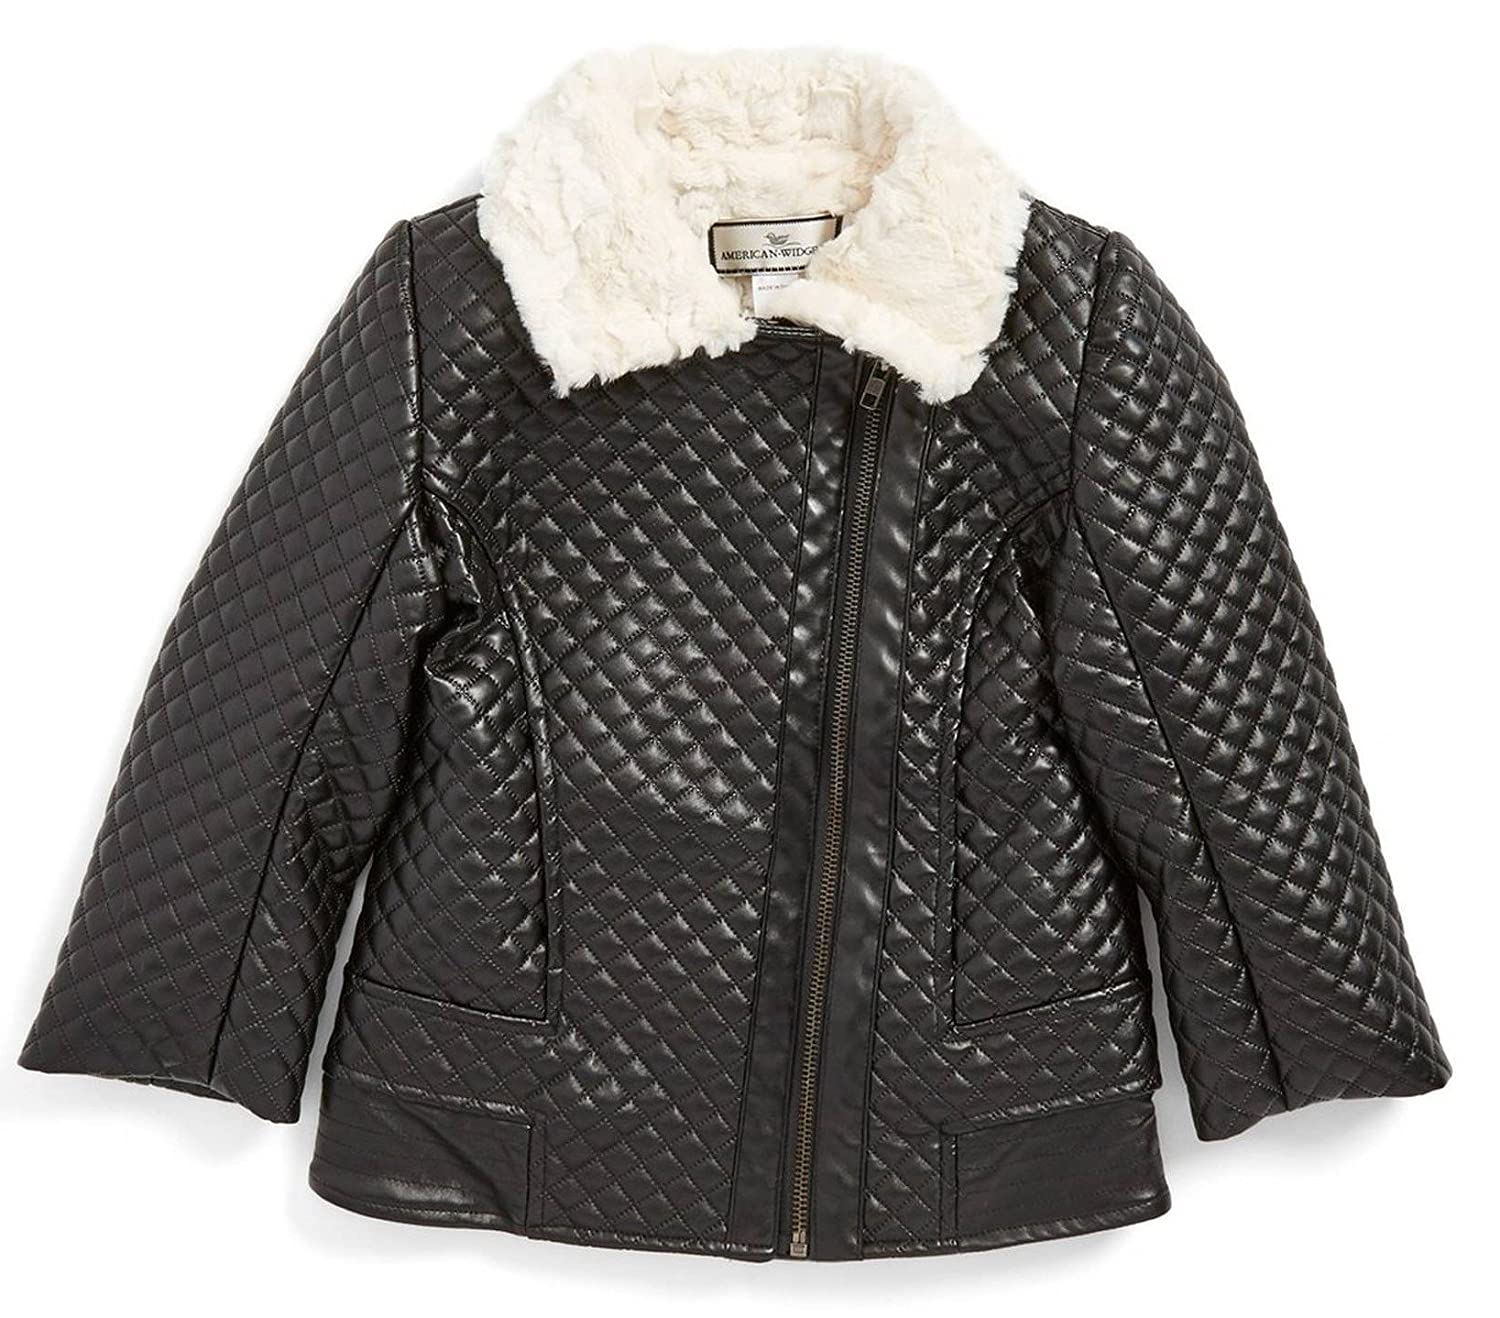 Sizes 4-12 Widgeon American Quilted Faux Leather and Fur Collar Moto Jacket